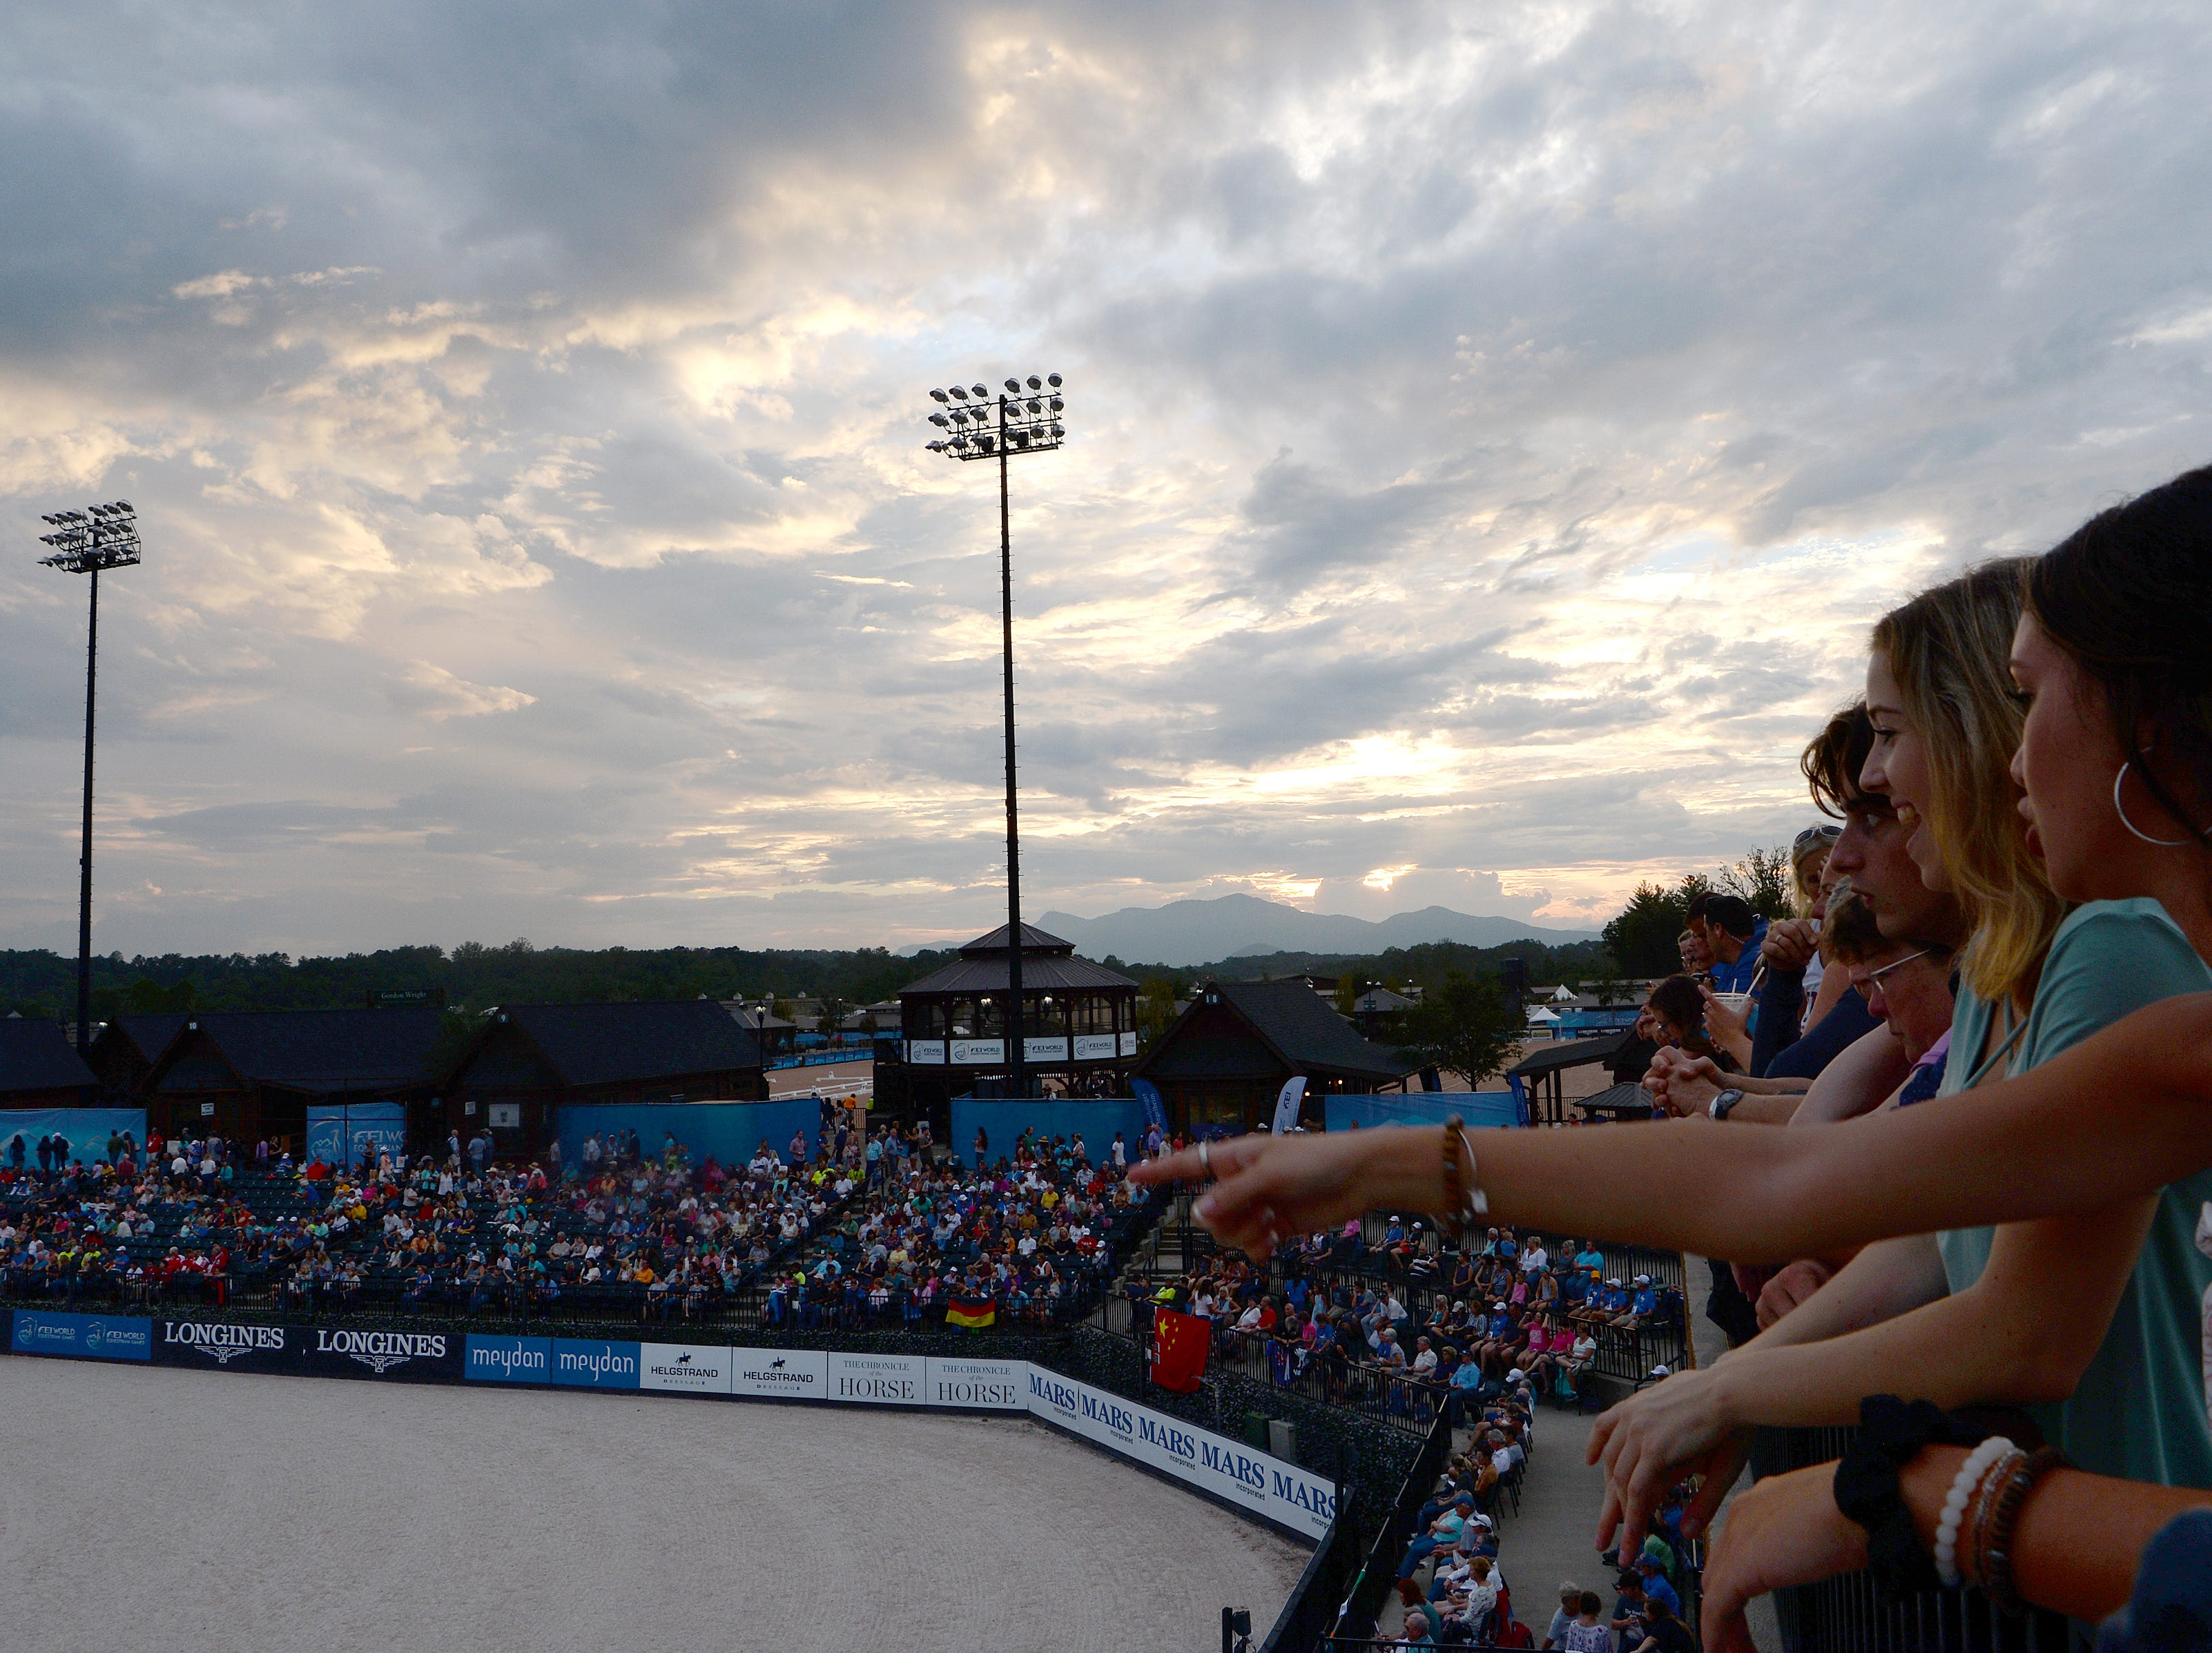 Fans, athletes and volunteers enjoy a concert by artist Hunter Hayes during the opening ceremony for the FEI World Equestrian Games at the Tryon International Equestrian Center on Sept. 11, 2018.